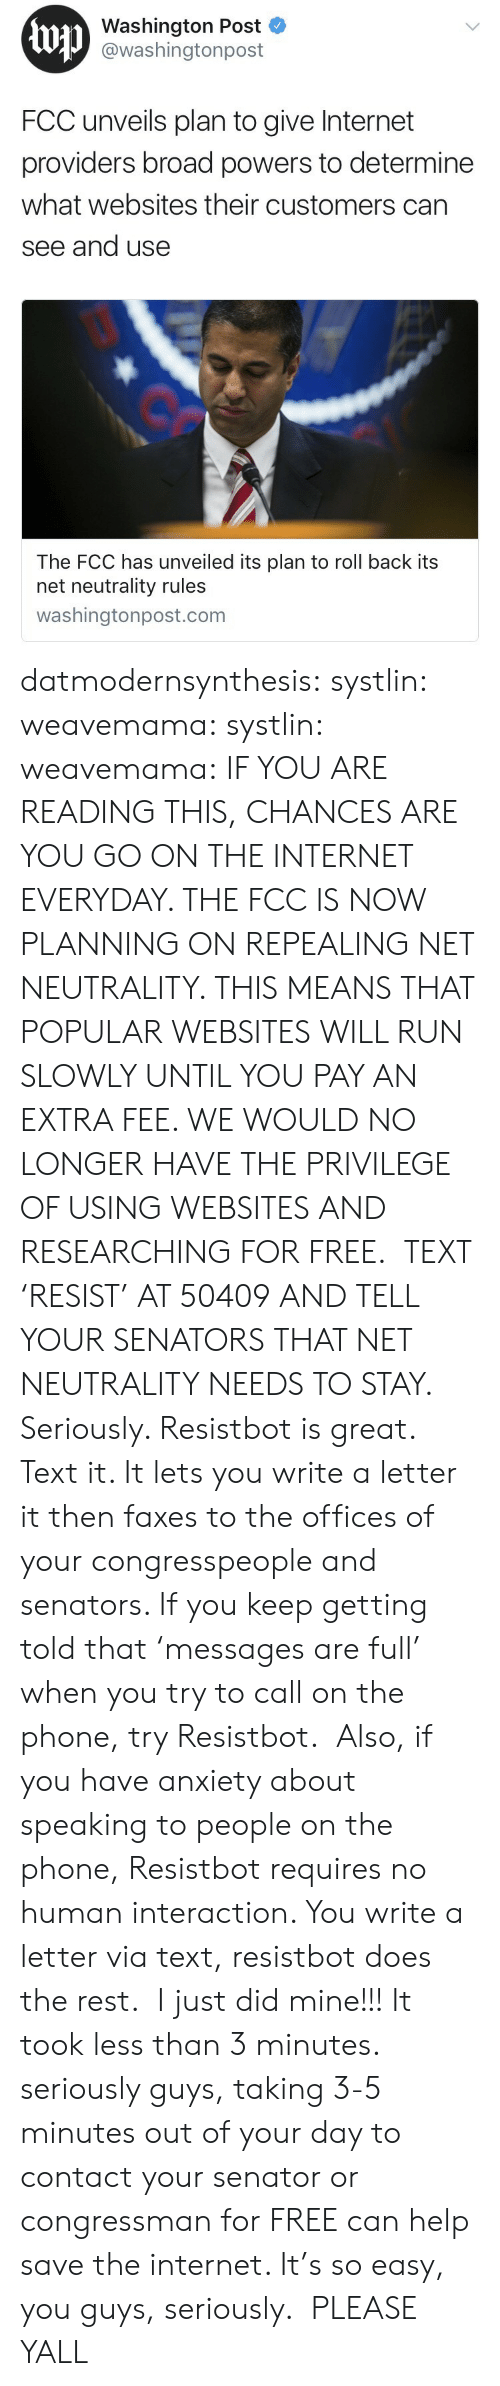 Seriously Guys: Washington Post  @washingtonpost  FCC unveils plan to give Internet  providers broad powers to determine  what websites their customers can  see and use  The FCC has unveiled its plan to roll back its  net neutrality rules  washingtonpost.com datmodernsynthesis: systlin:  weavemama:  systlin:   weavemama:  IF YOU ARE READING THIS, CHANCES ARE YOU GO ON THE INTERNET EVERYDAY. THE FCC IS NOW PLANNING ON REPEALING NET NEUTRALITY. THIS MEANS THAT POPULAR WEBSITES WILL RUN SLOWLY UNTIL YOU PAY AN EXTRA FEE. WE WOULD NO LONGER HAVE THE PRIVILEGE OF USING WEBSITES AND RESEARCHING FOR FREE. TEXT 'RESIST' AT 50409 AND TELL YOUR SENATORS THAT NET NEUTRALITY NEEDS TO STAY.  Seriously. Resistbot is great. Text it. It lets you write a letter it then faxes to the offices of your congresspeople and senators. If you keep getting told that'messages are full' when you try to call on the phone, try Resistbot. Also, if you have anxiety about speaking to people on the phone, Resistbot requires no human interaction. You write a letter via text, resistbot does the rest.   I just did mine!!! It took less than 3 minutes. seriously guys, taking 3-5 minutes out of your day to contact your senator or congressman for FREE can help save the internet.   It's so easy, you guys, seriously.  PLEASE YALL